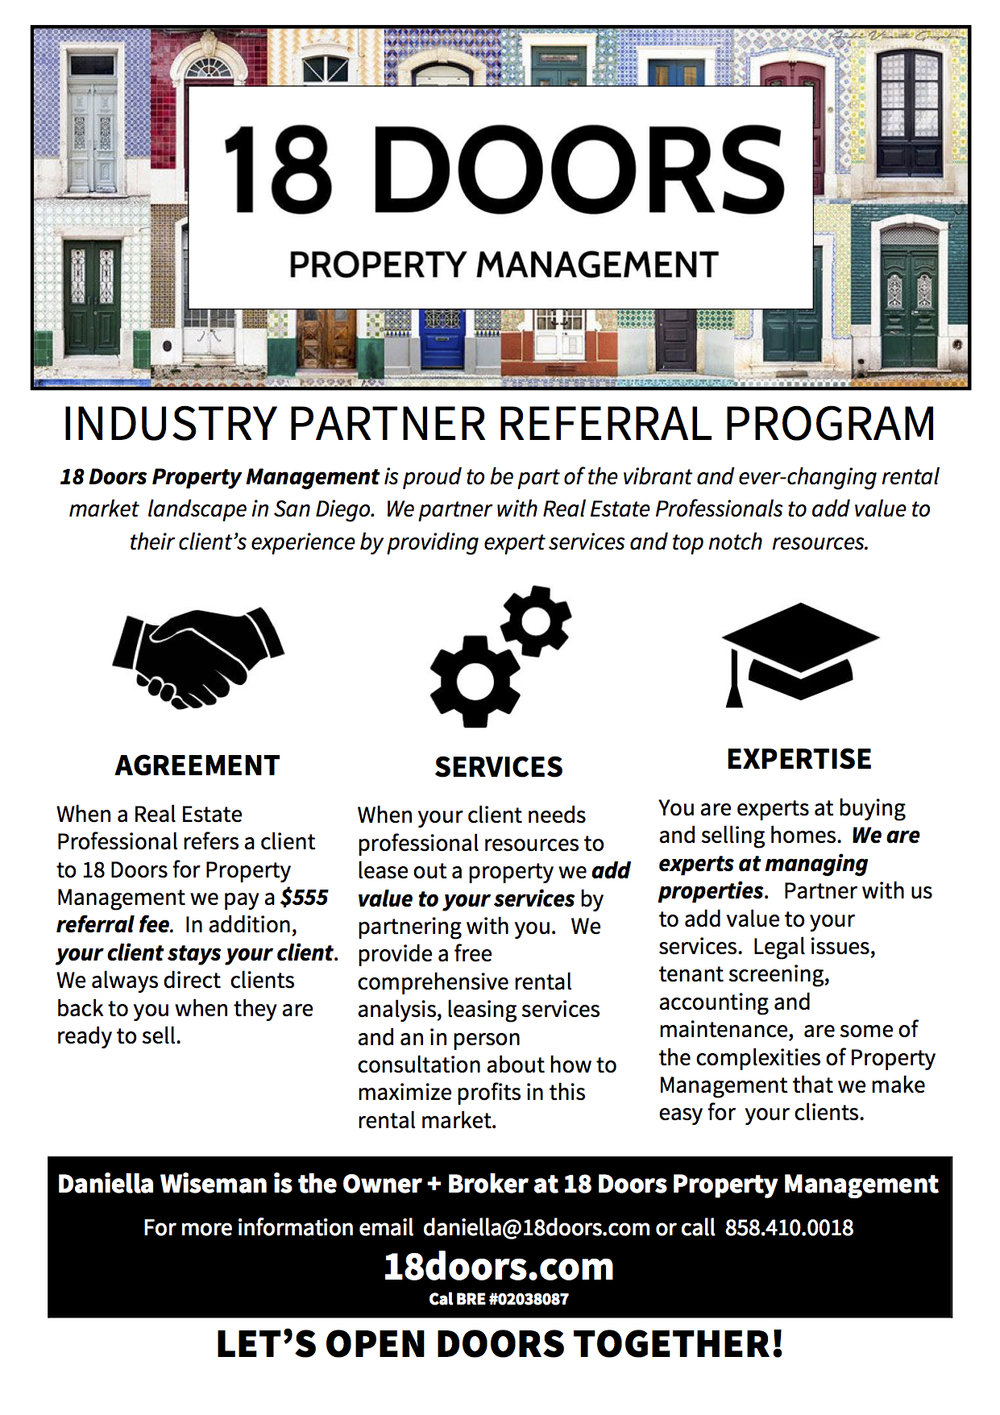 PARTNER REFERRAL PROGRAM.jpg